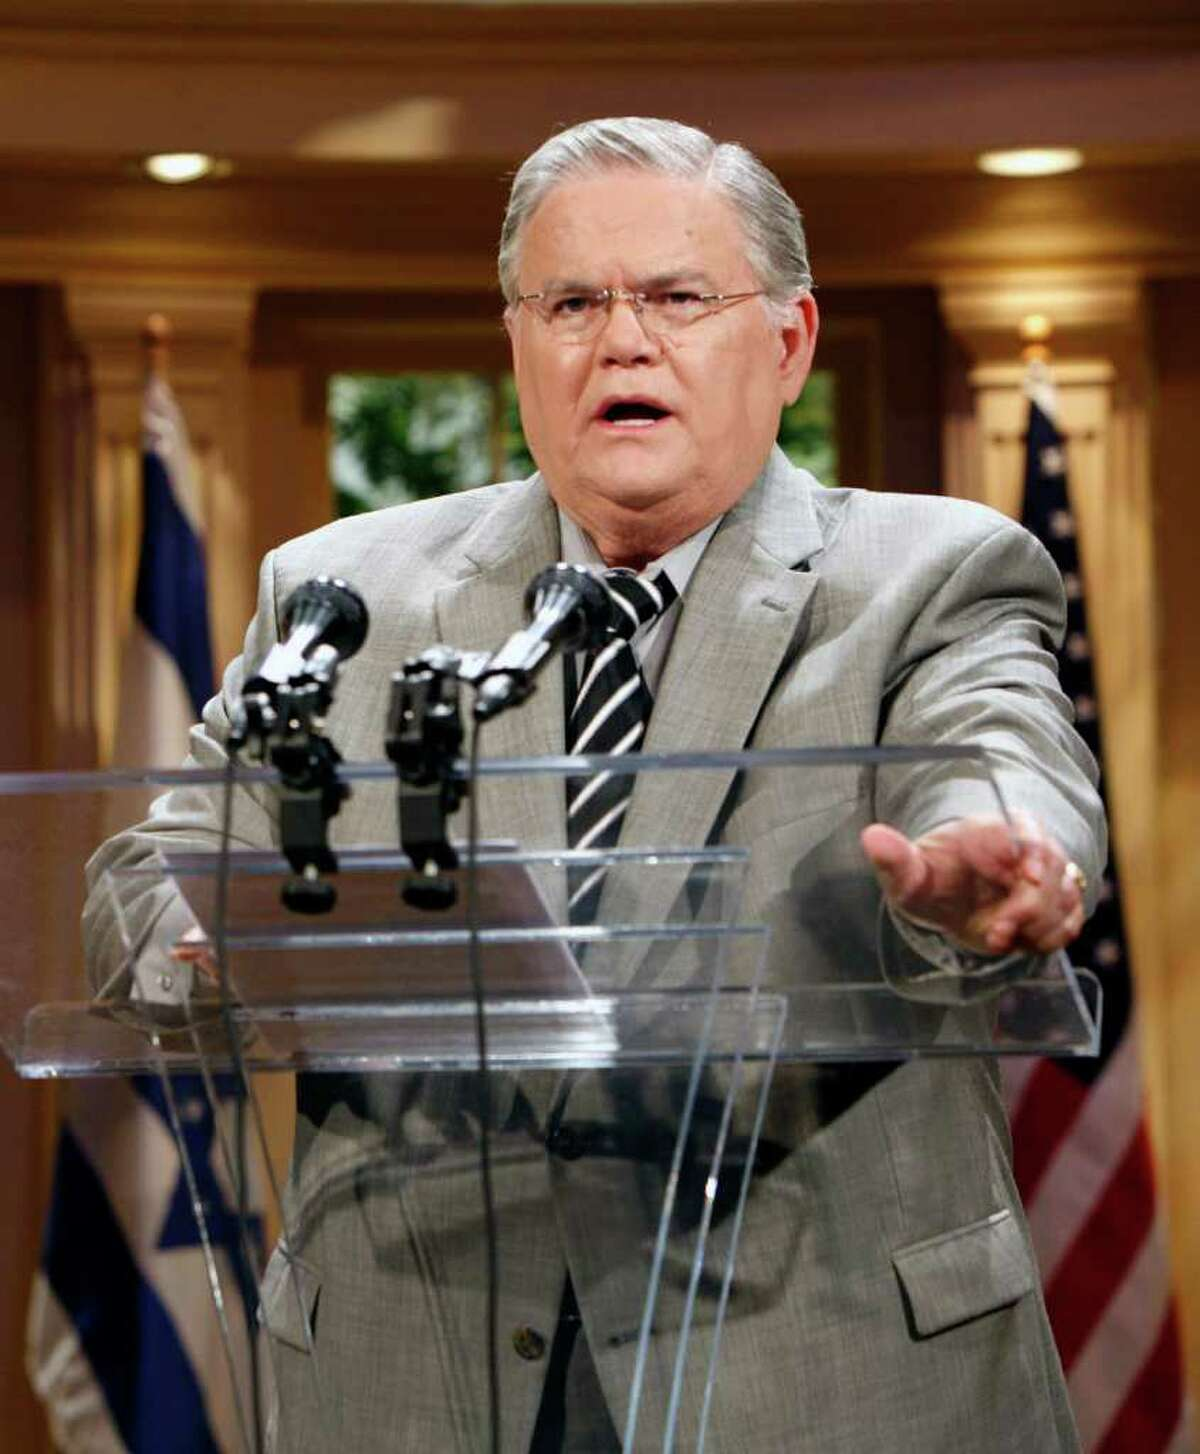 ** FILE ** In this May 23, 2008, file photo the Rev. John Hagee speaks during a news conference at the Cornerstone Church in San Antonio, Texas. Hagee, the internationally known radio/TV evangelist, is recovering after undergoing open heart surgery Thursday, Oct. 2, 2008.